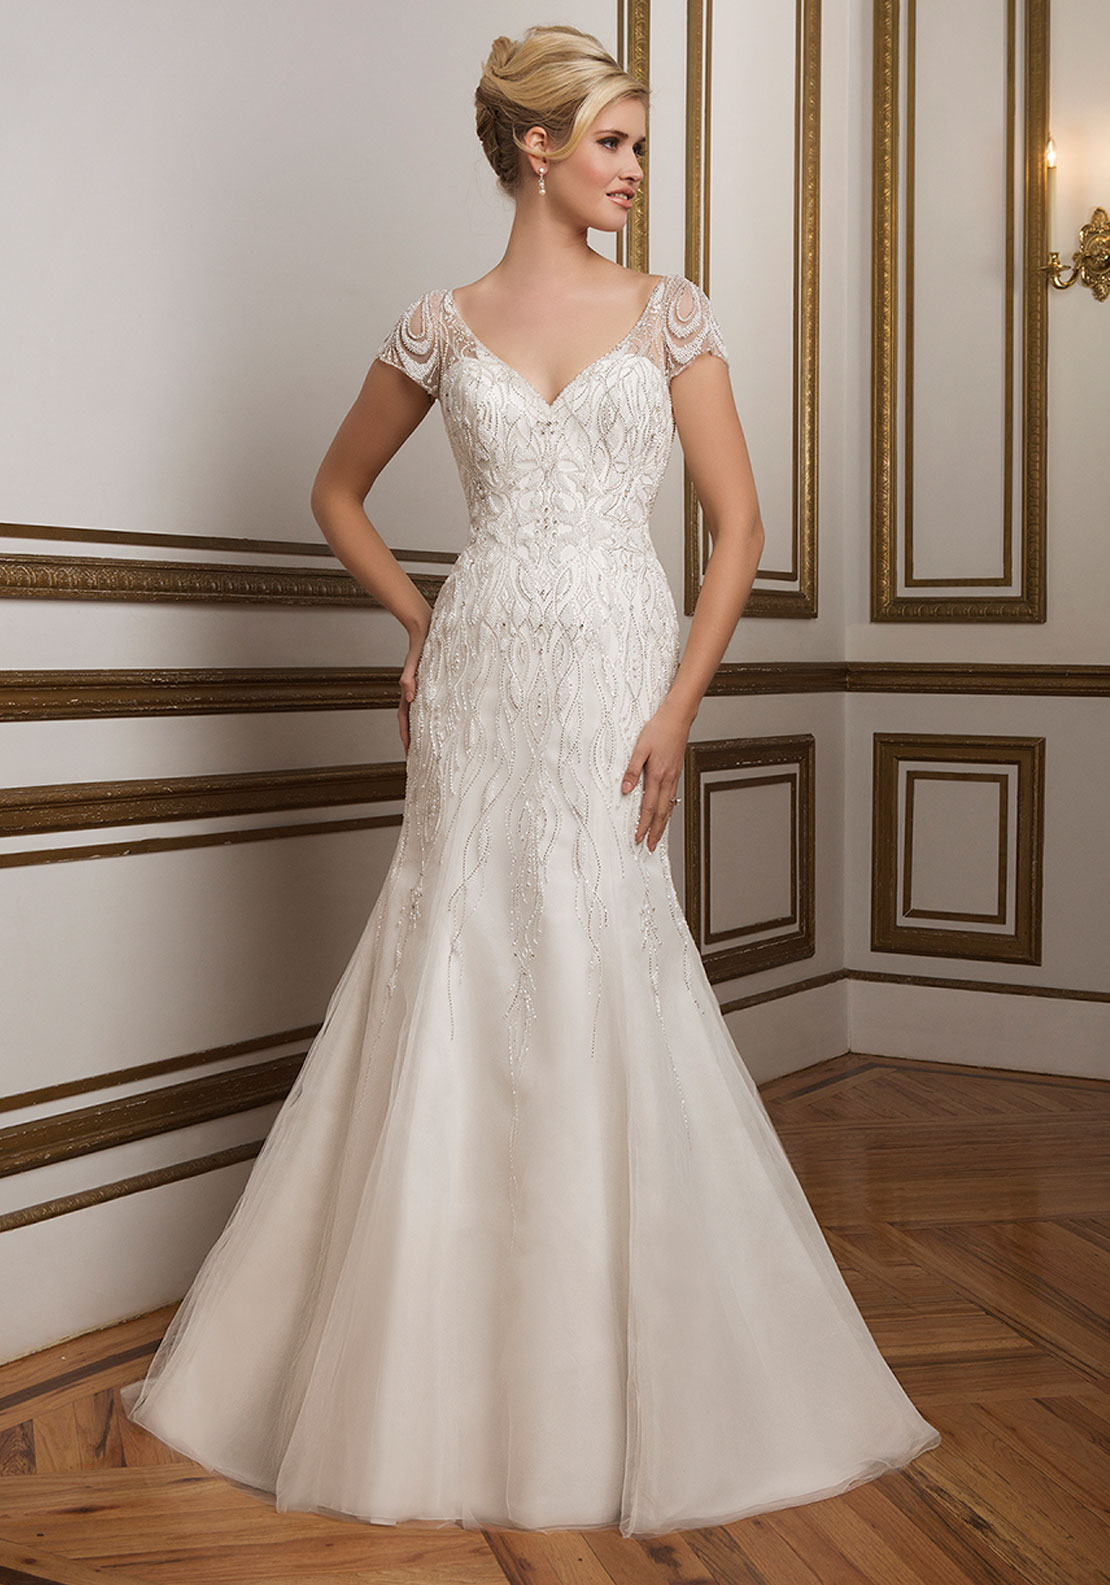 Justin Alexander 8846 Wedding Dress Alabaster UK Size 14